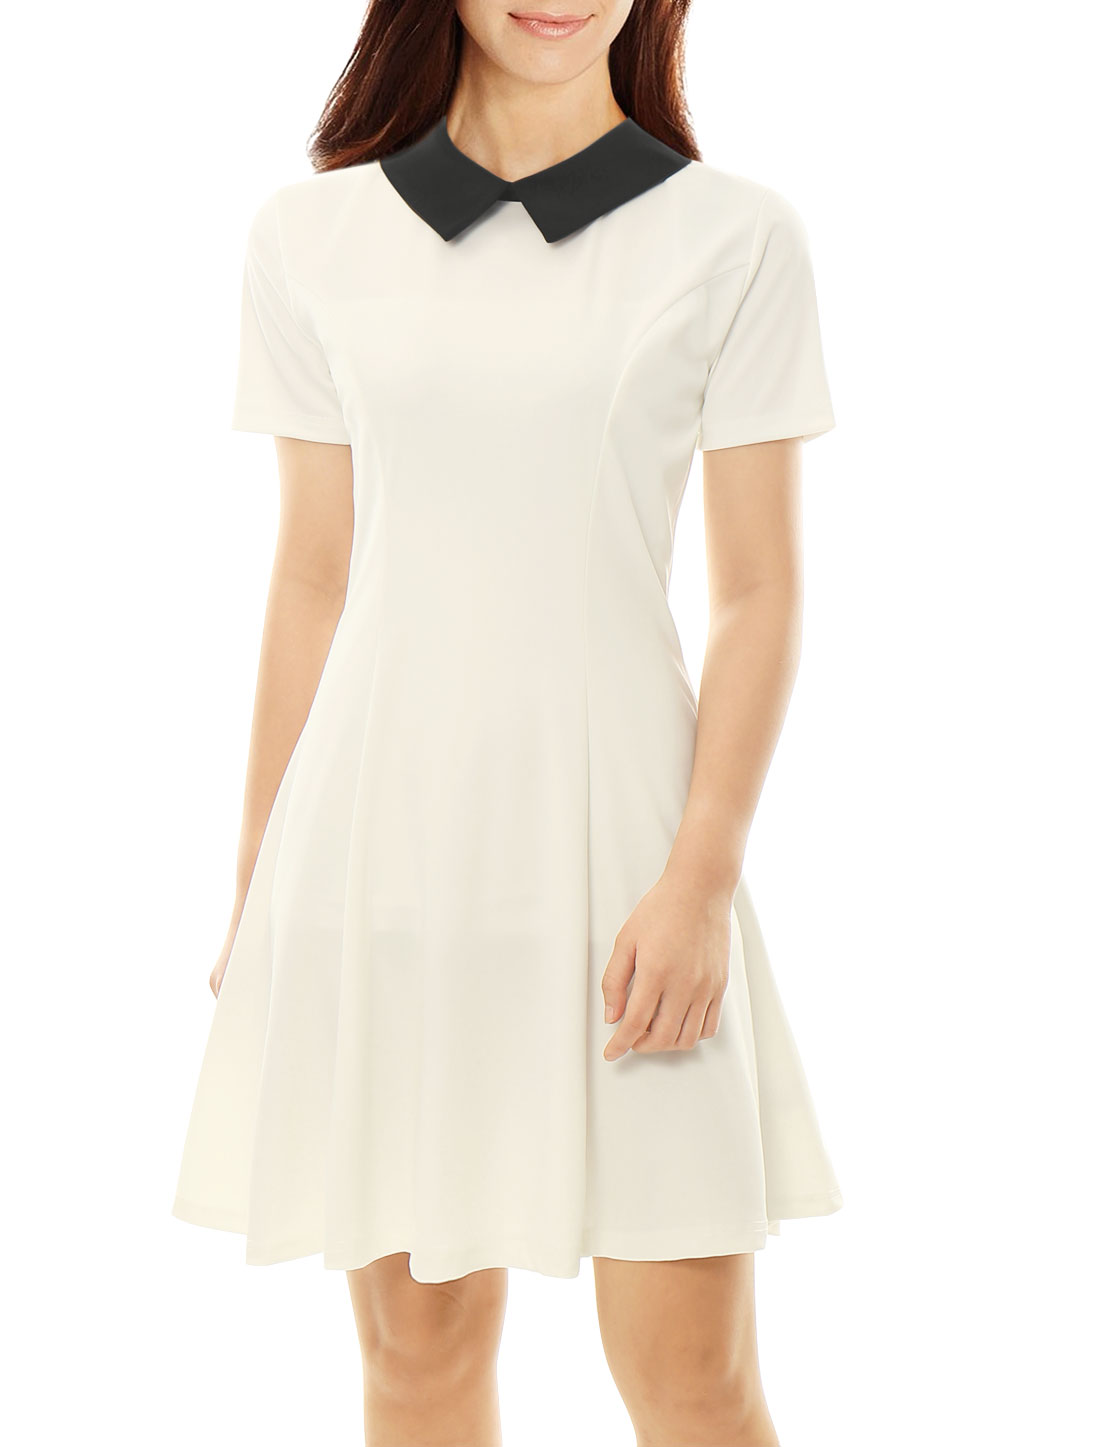 Women Contrast Doll Collar Short Sleeves Flare Dress White L